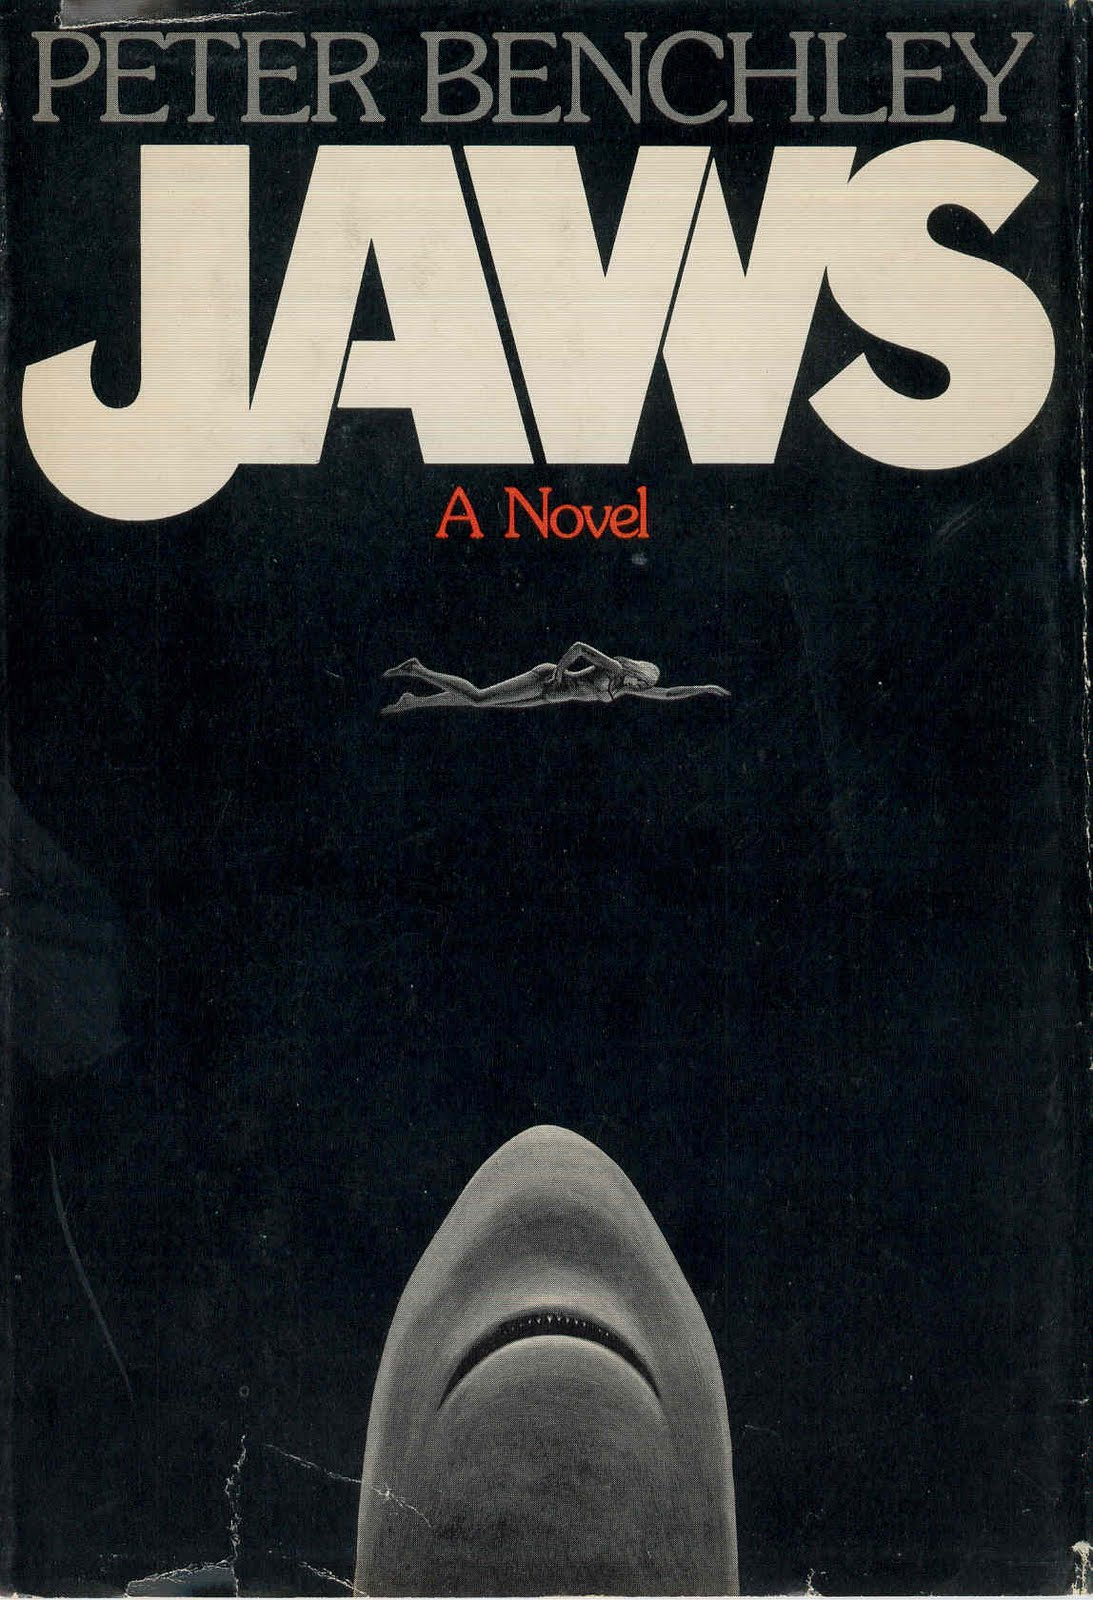 jaws essay help jaws essay help essays and papers jaws essay help jaws essay help essays and papers jaws essay help